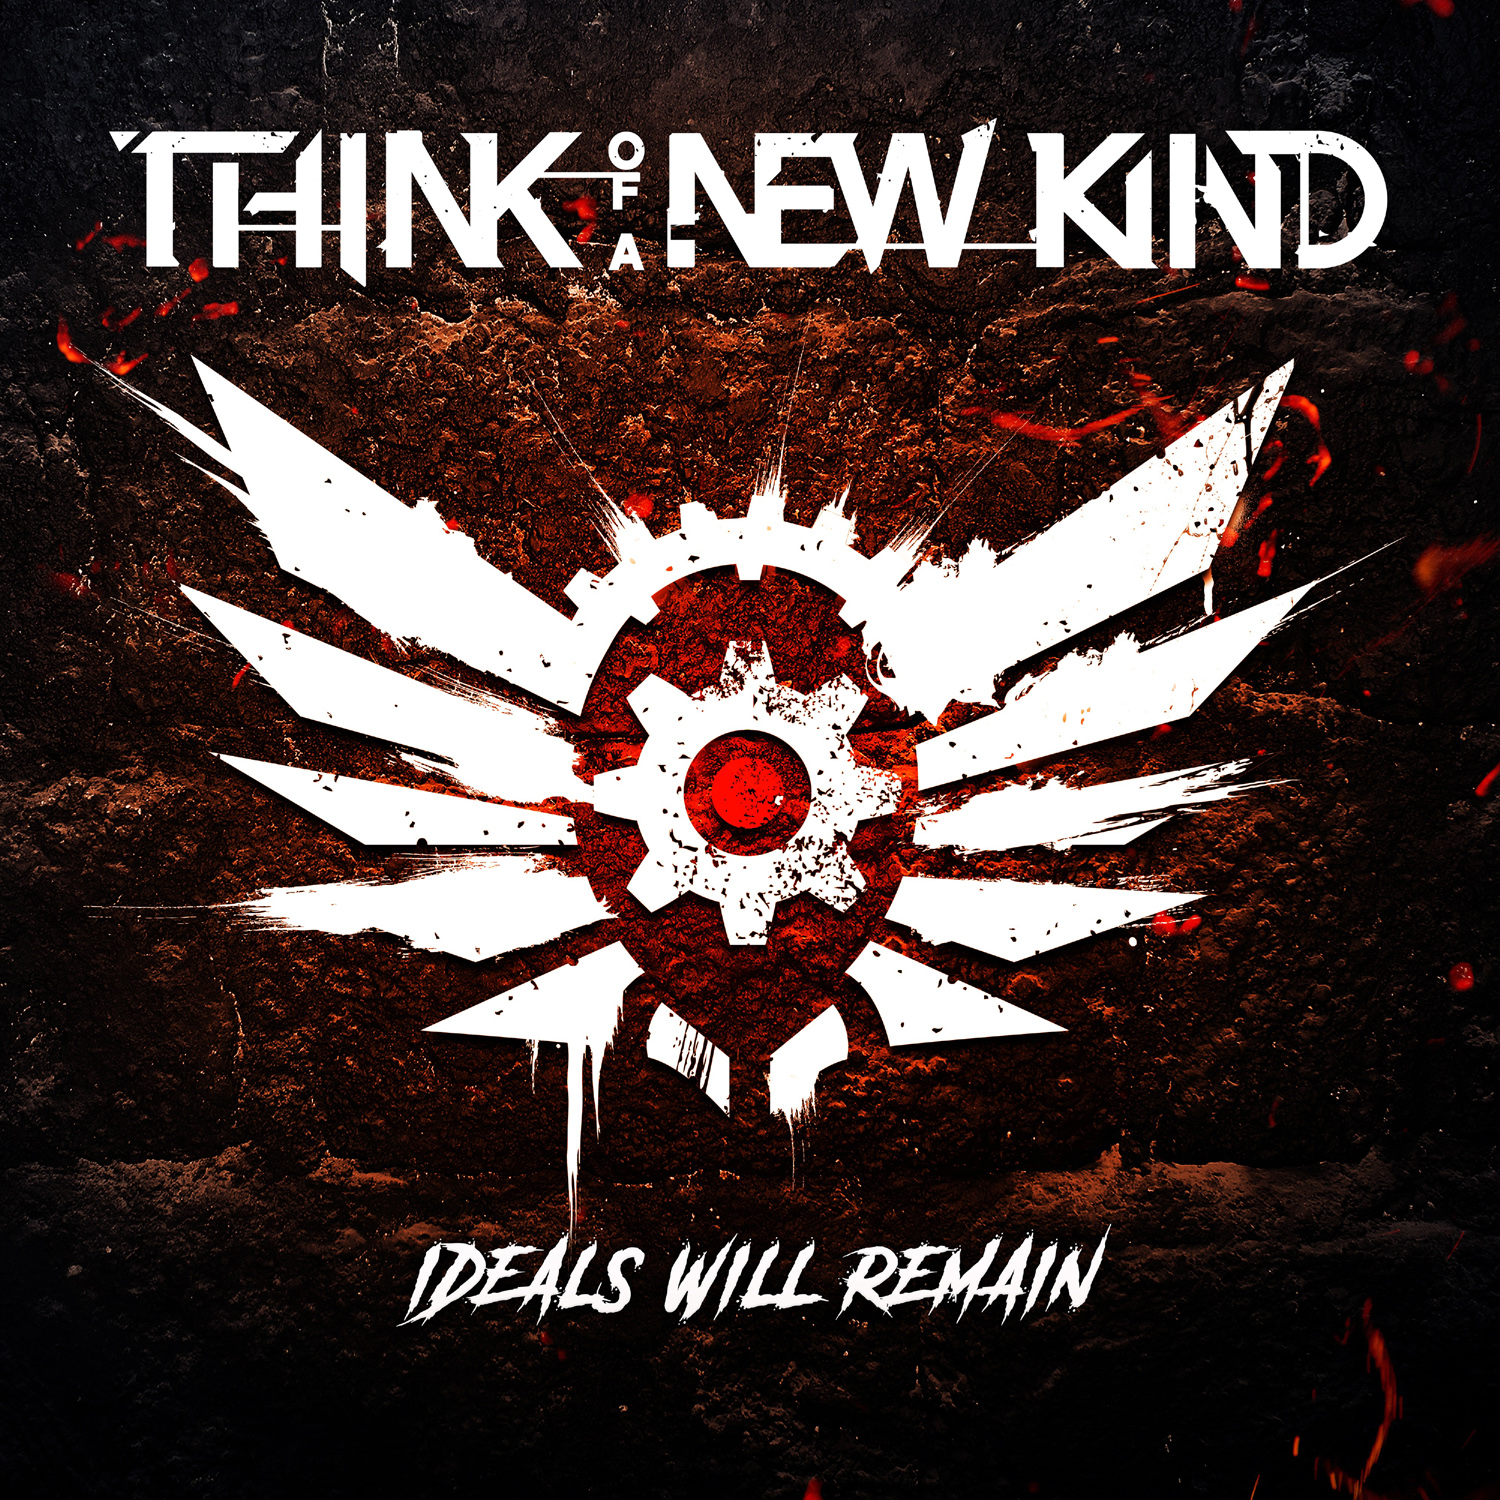 think of a new kind - ideals will remain